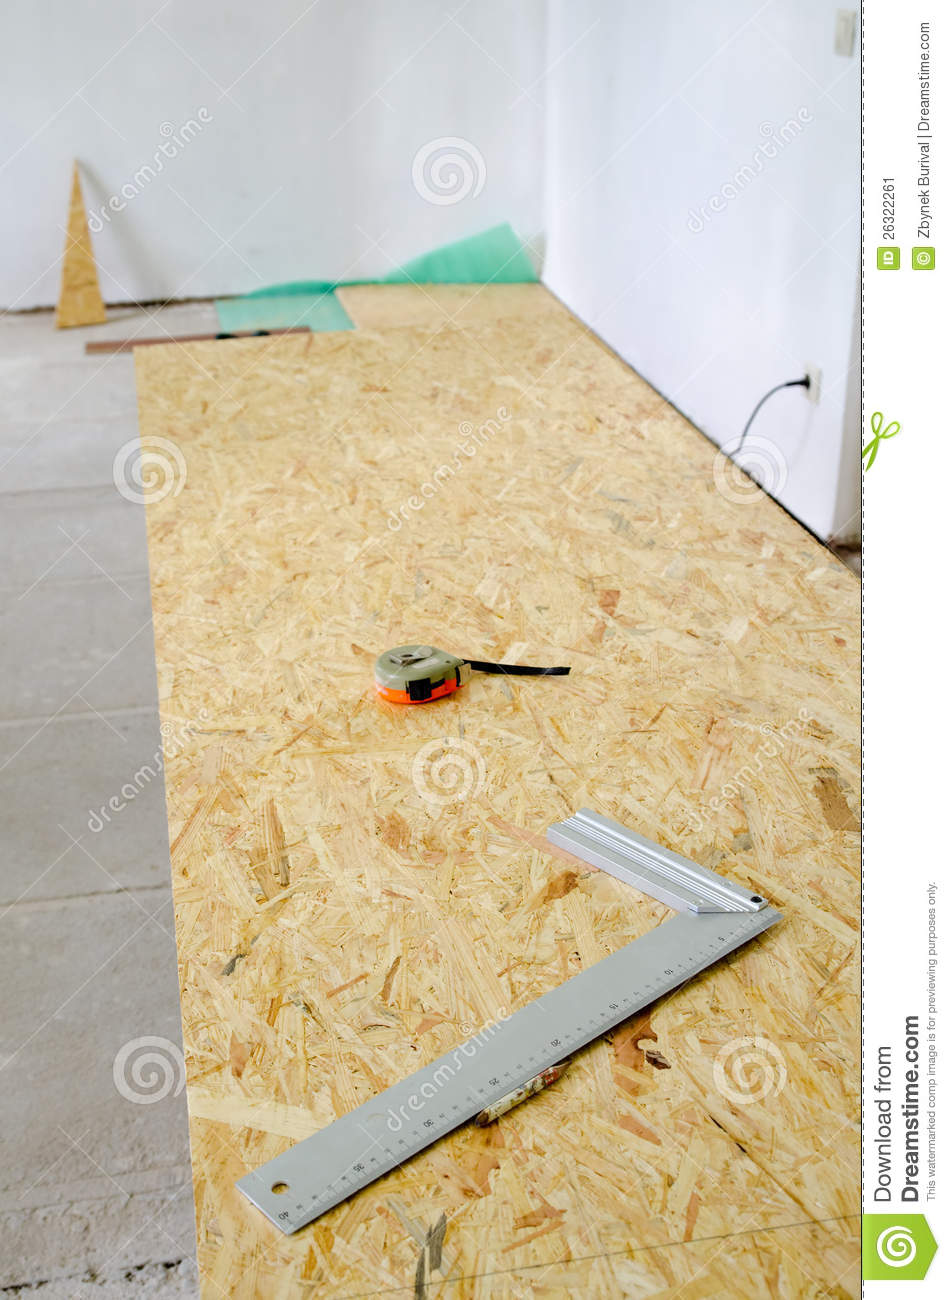 how to fix chipboard flooring